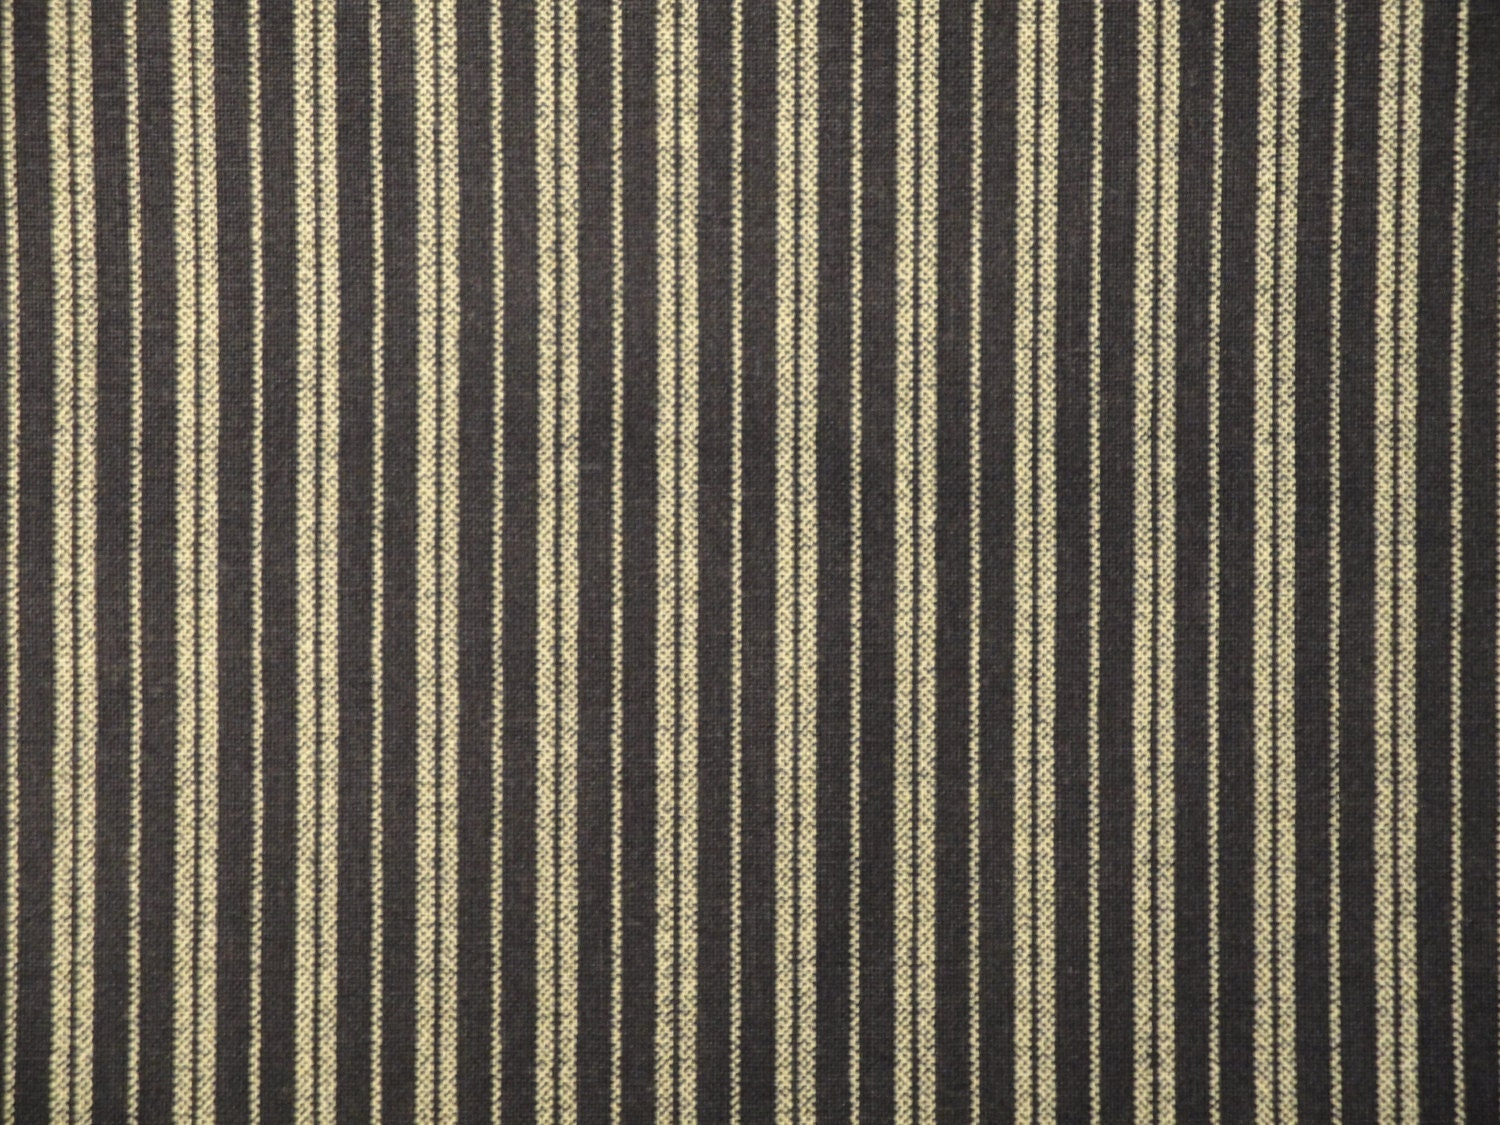 Ticking stripe material ticking fabric by kittredgemercantile for Ticking fabric